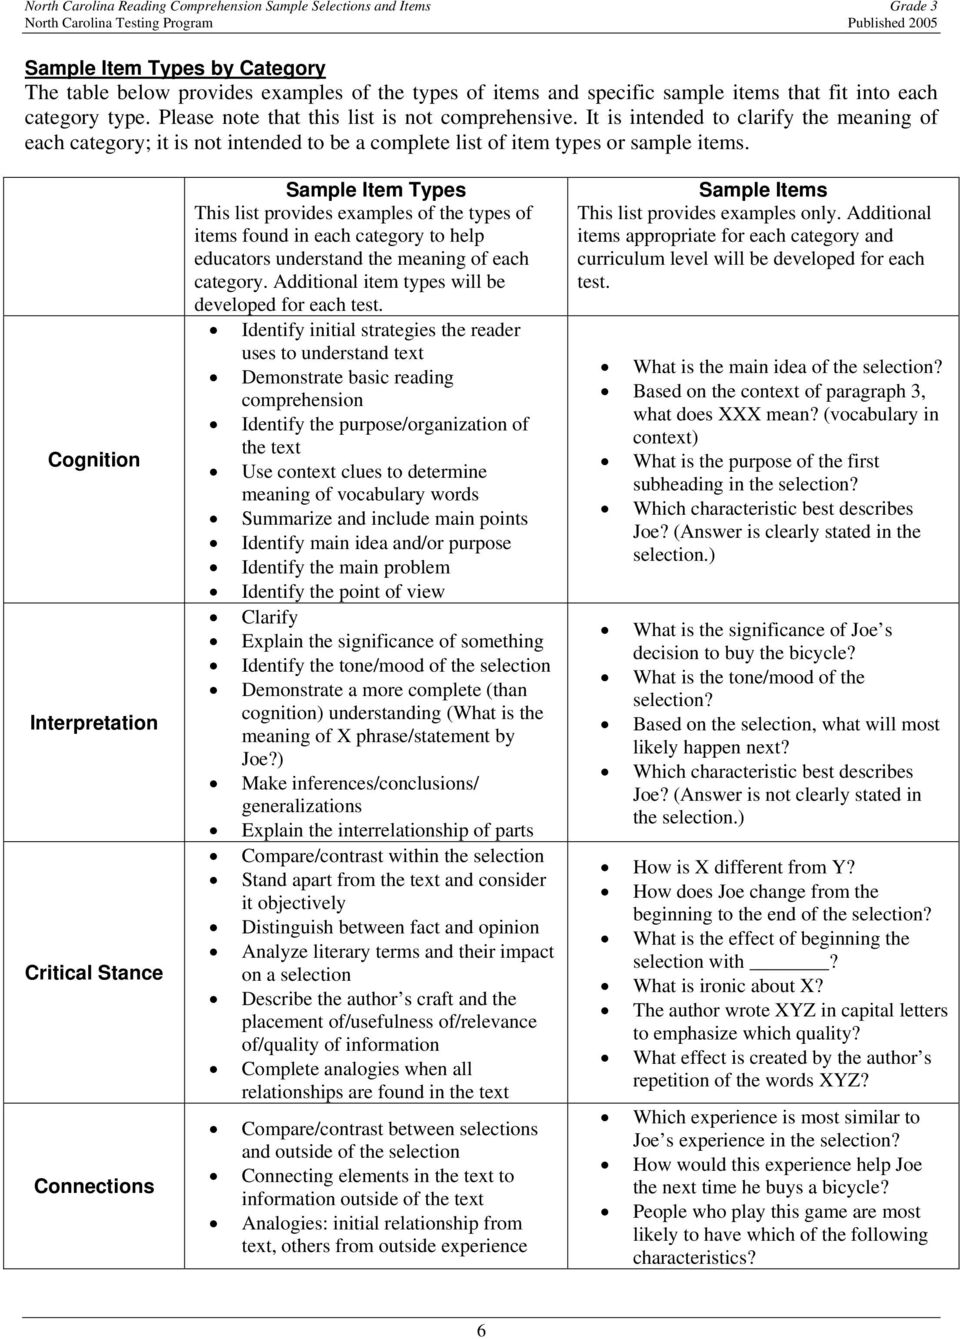 Cognition Interpretation Critical Stance Connections Sample Item Types This list provides examples of the types of items found in each category to help educators understand the meaning of each